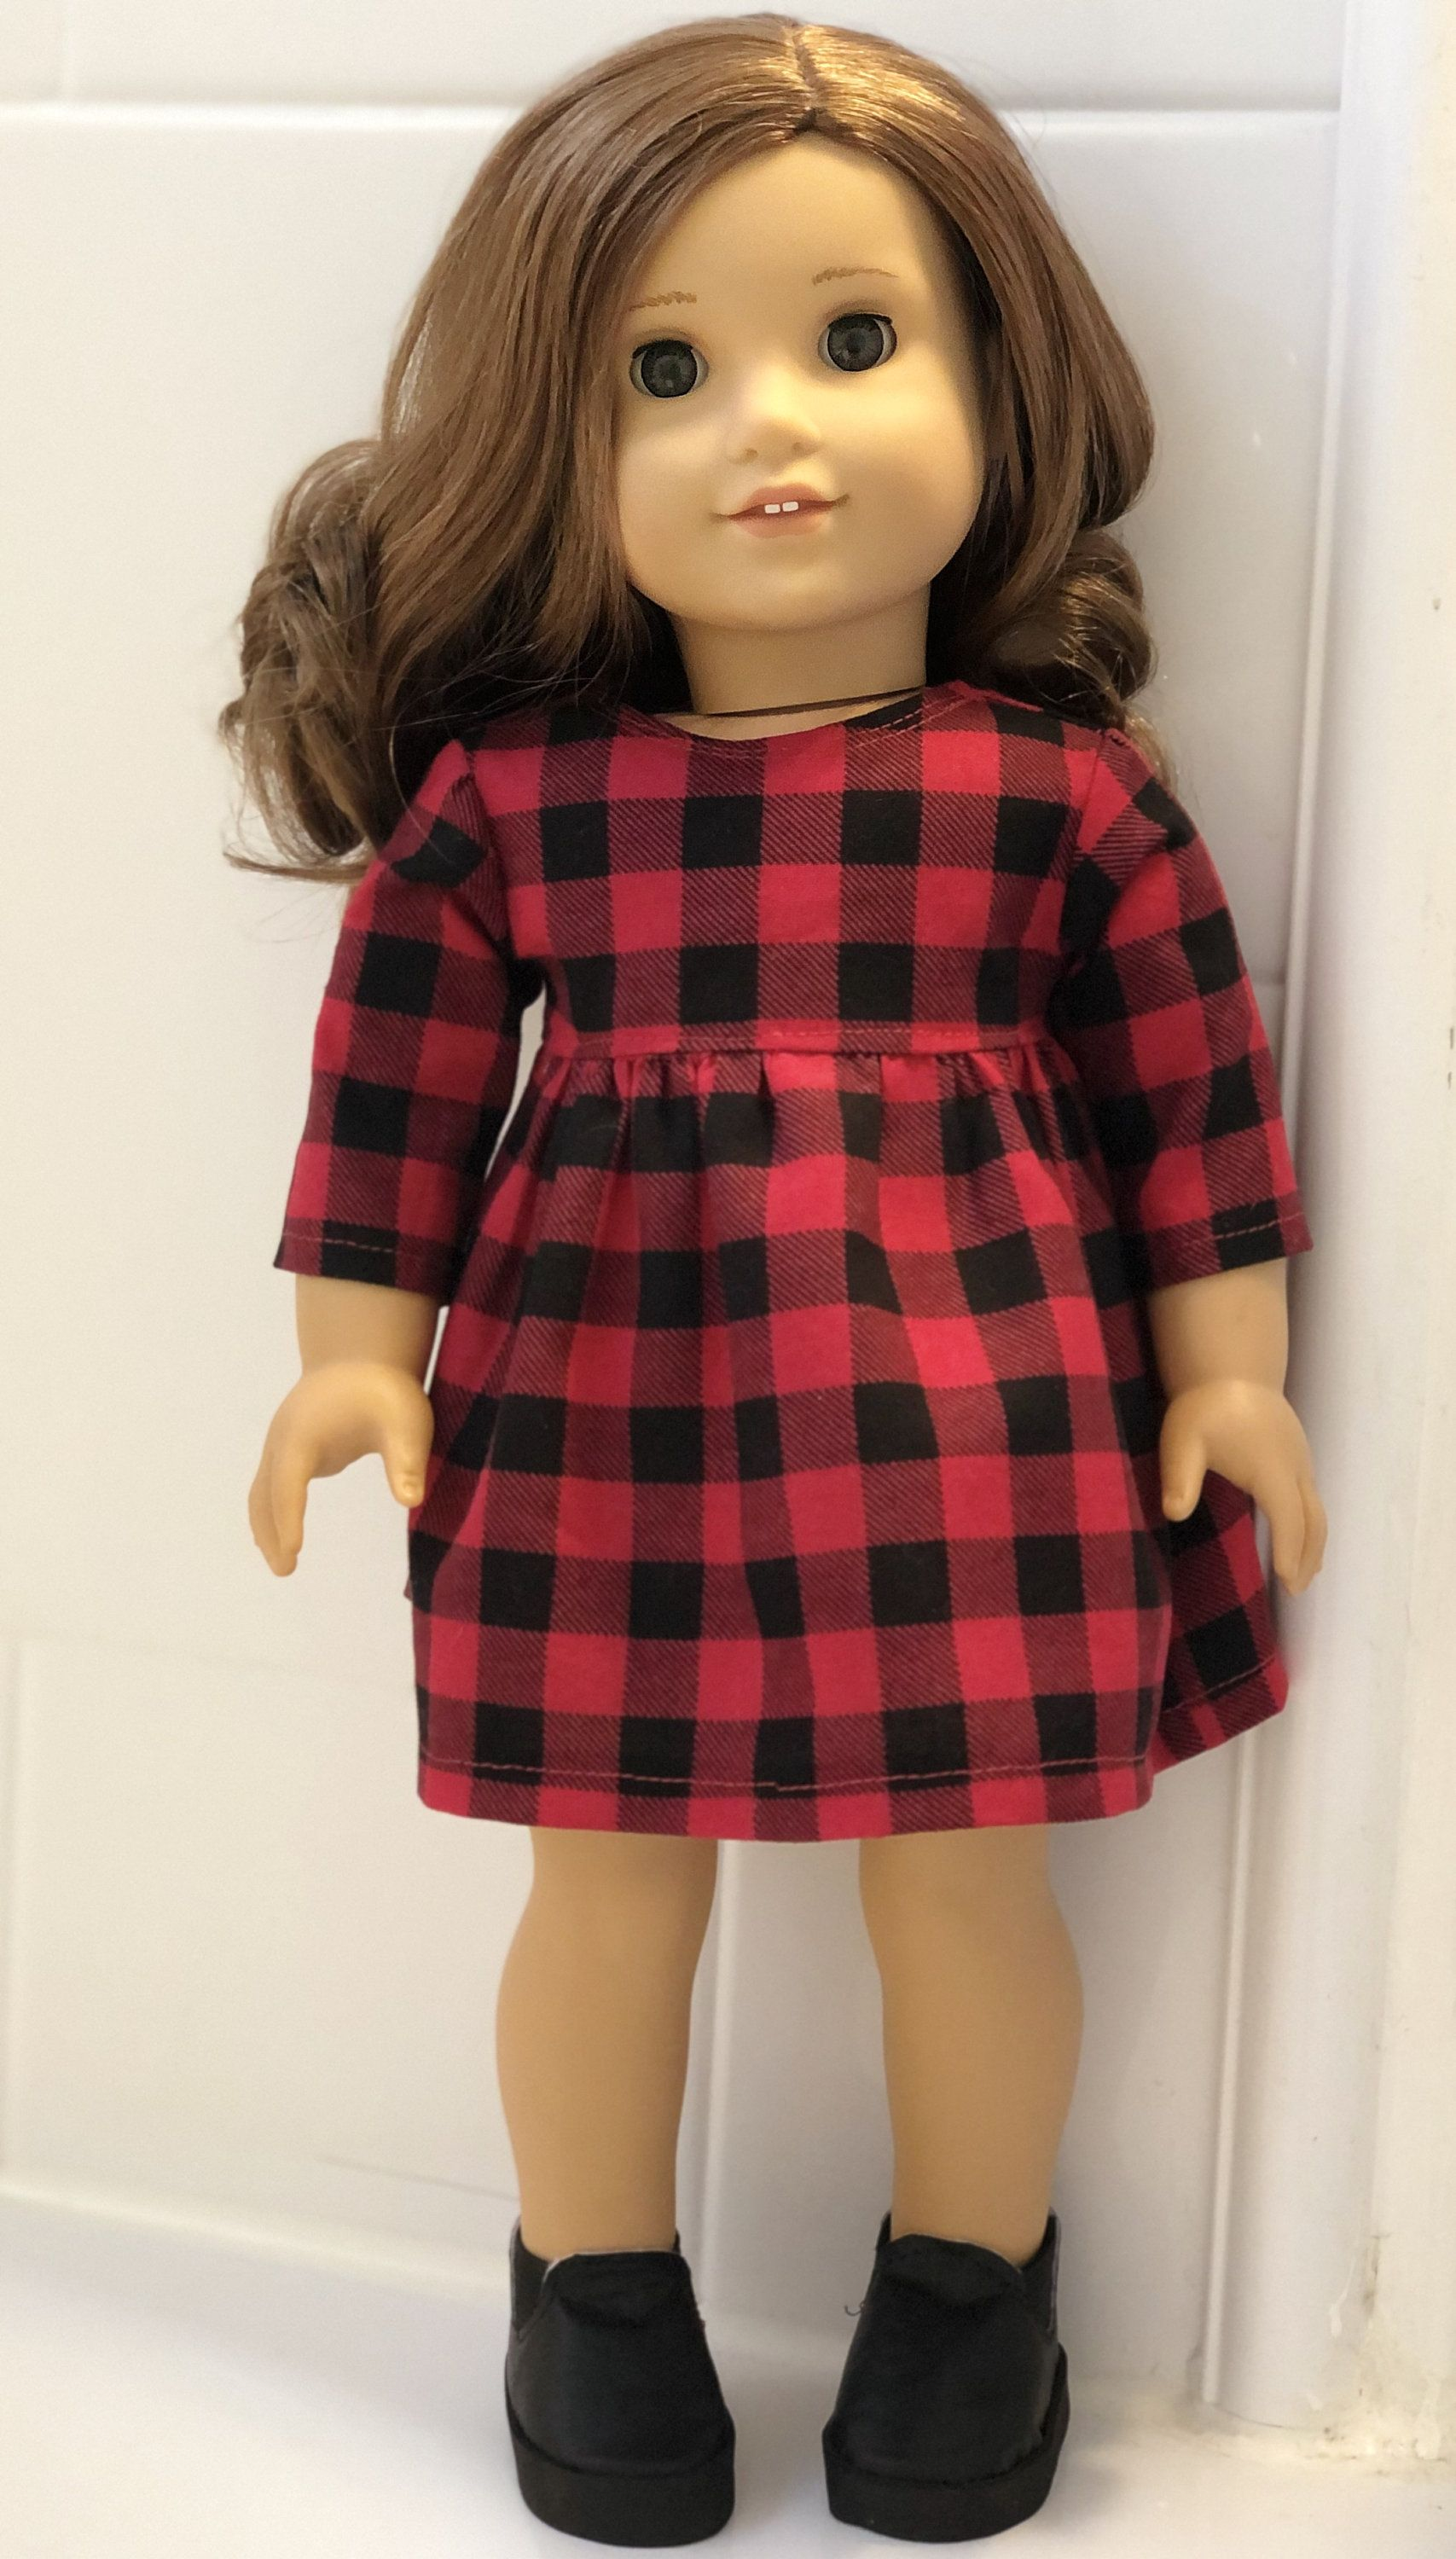 18 Inch Doll Clothes - Red and Black Check Baby Doll Dress and Ankle Boots for Girl Dolls Such as THE Most Popular Girl Doll #18inchdollsandclothes